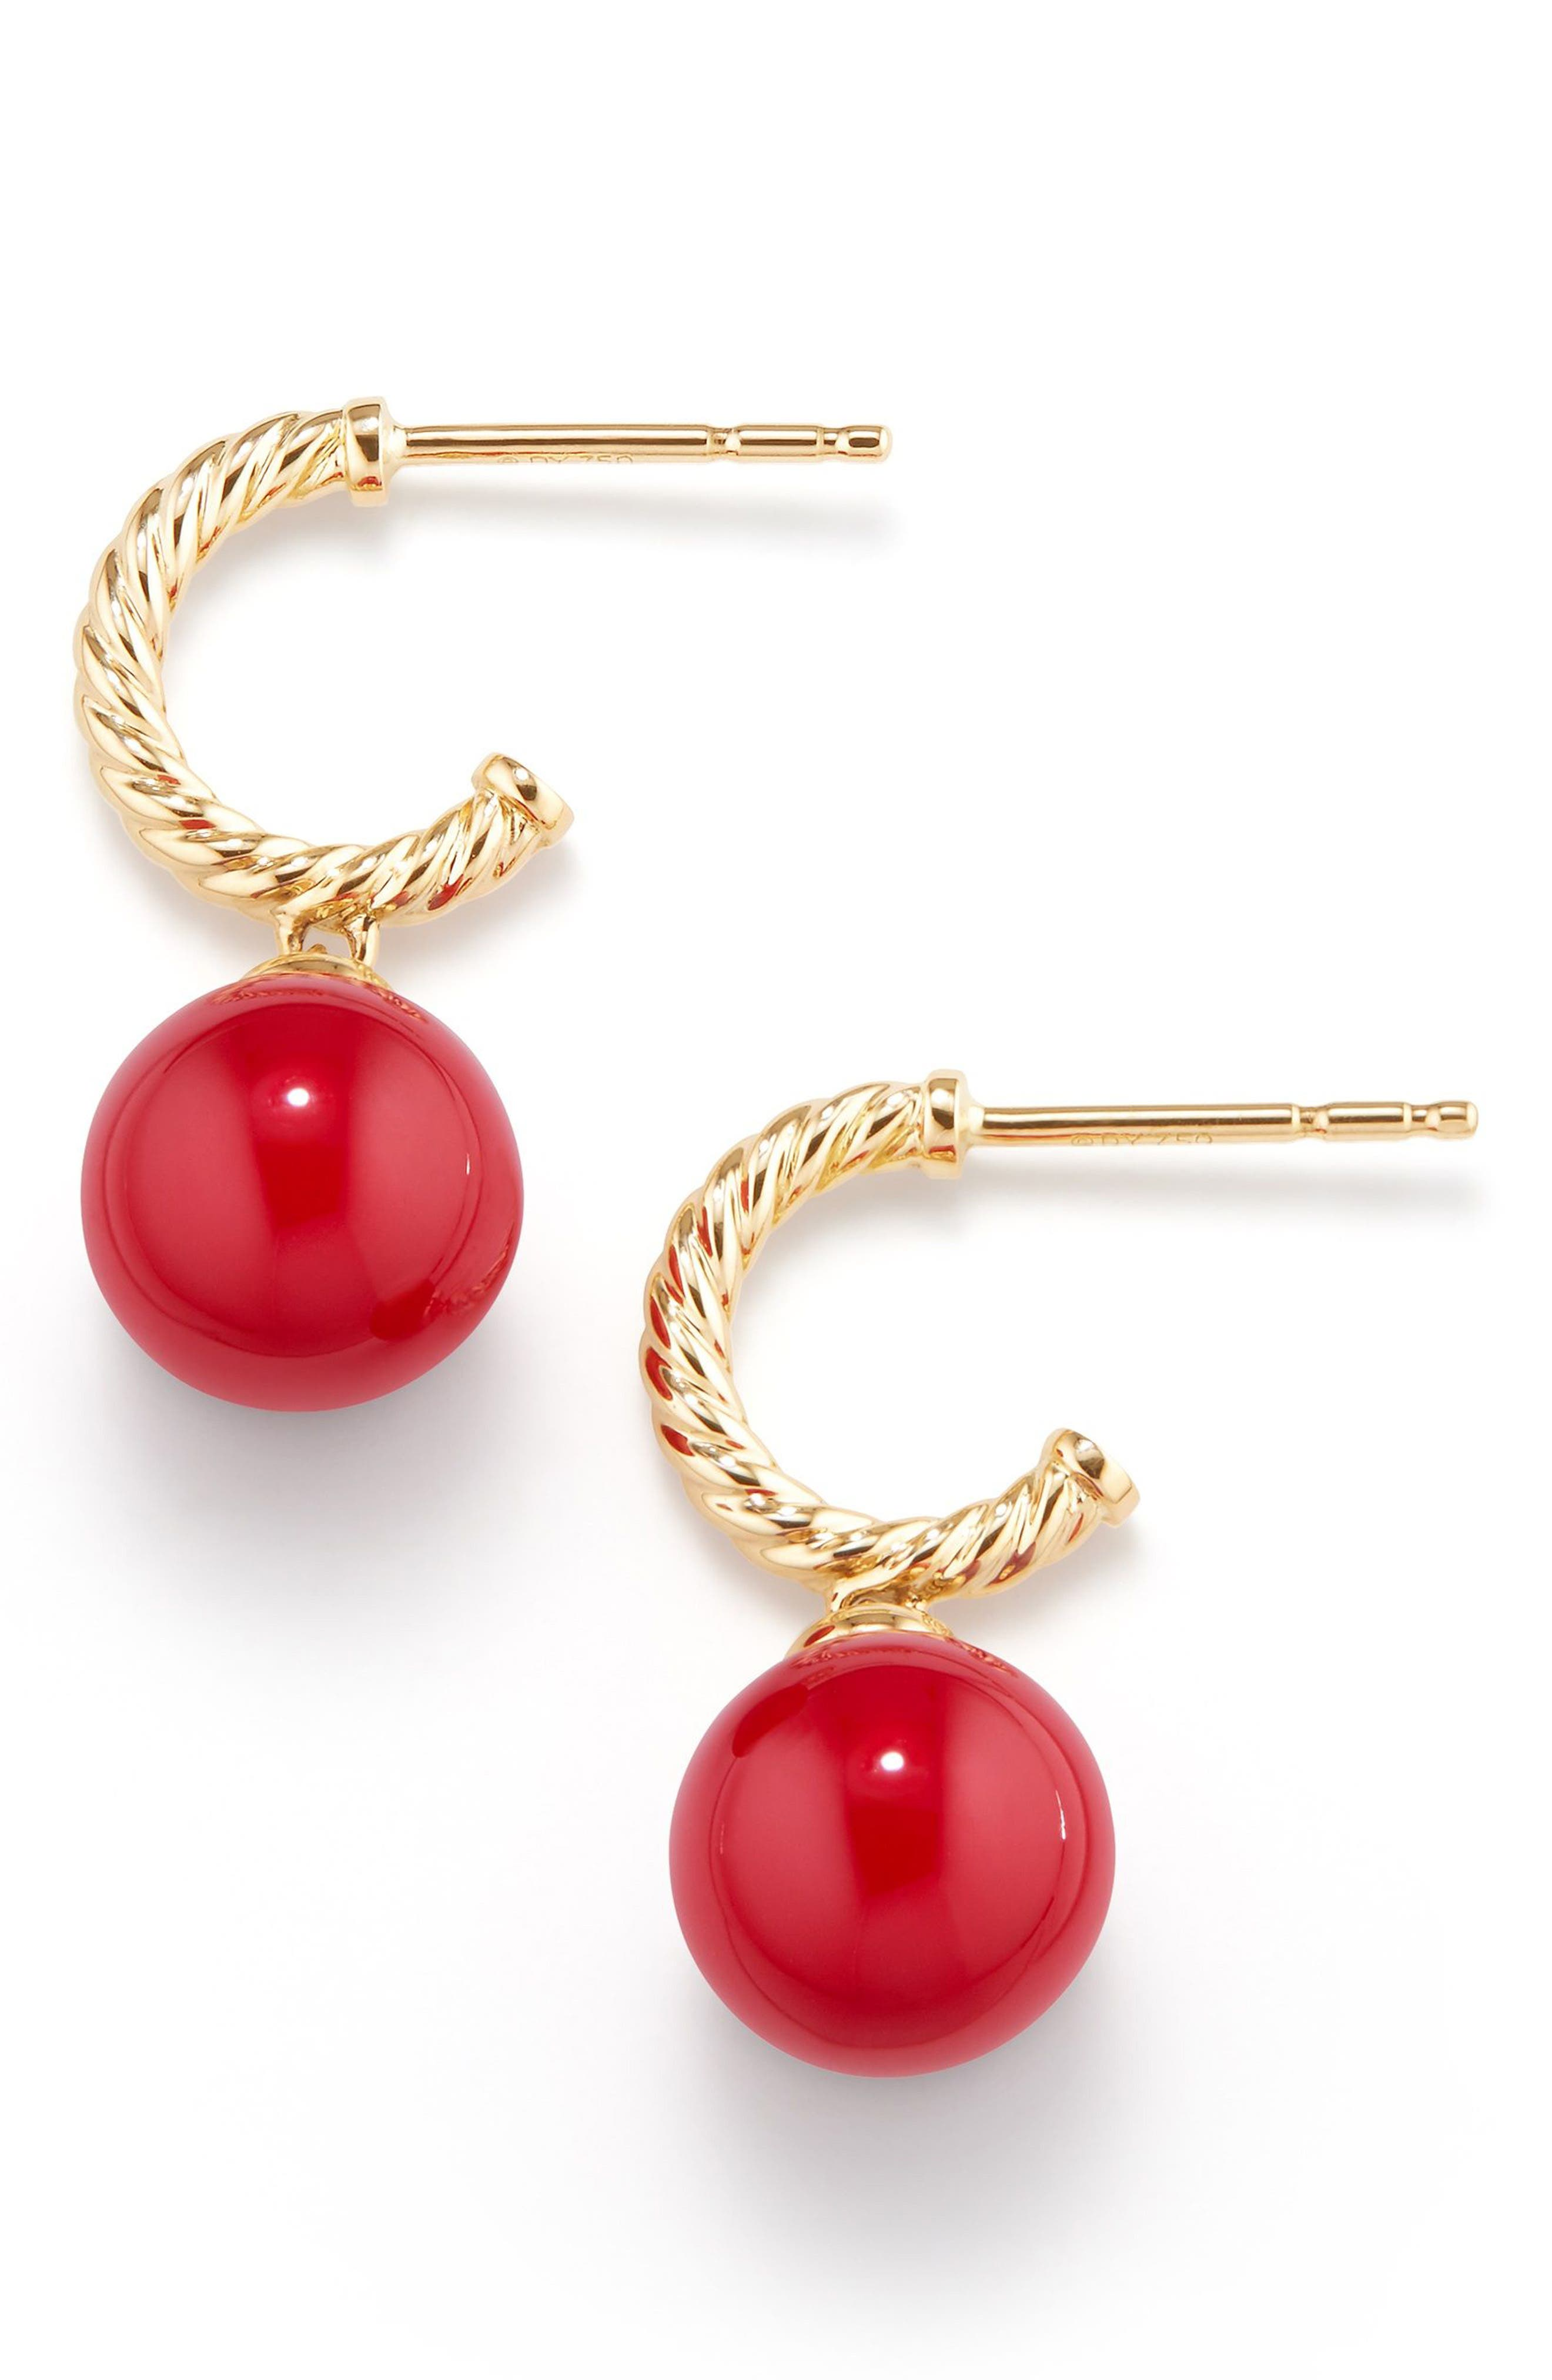 Solari Hoop Earrings with 18K Gold and Red Enamel,                             Main thumbnail 1, color,                             Yellow Gold/ Red